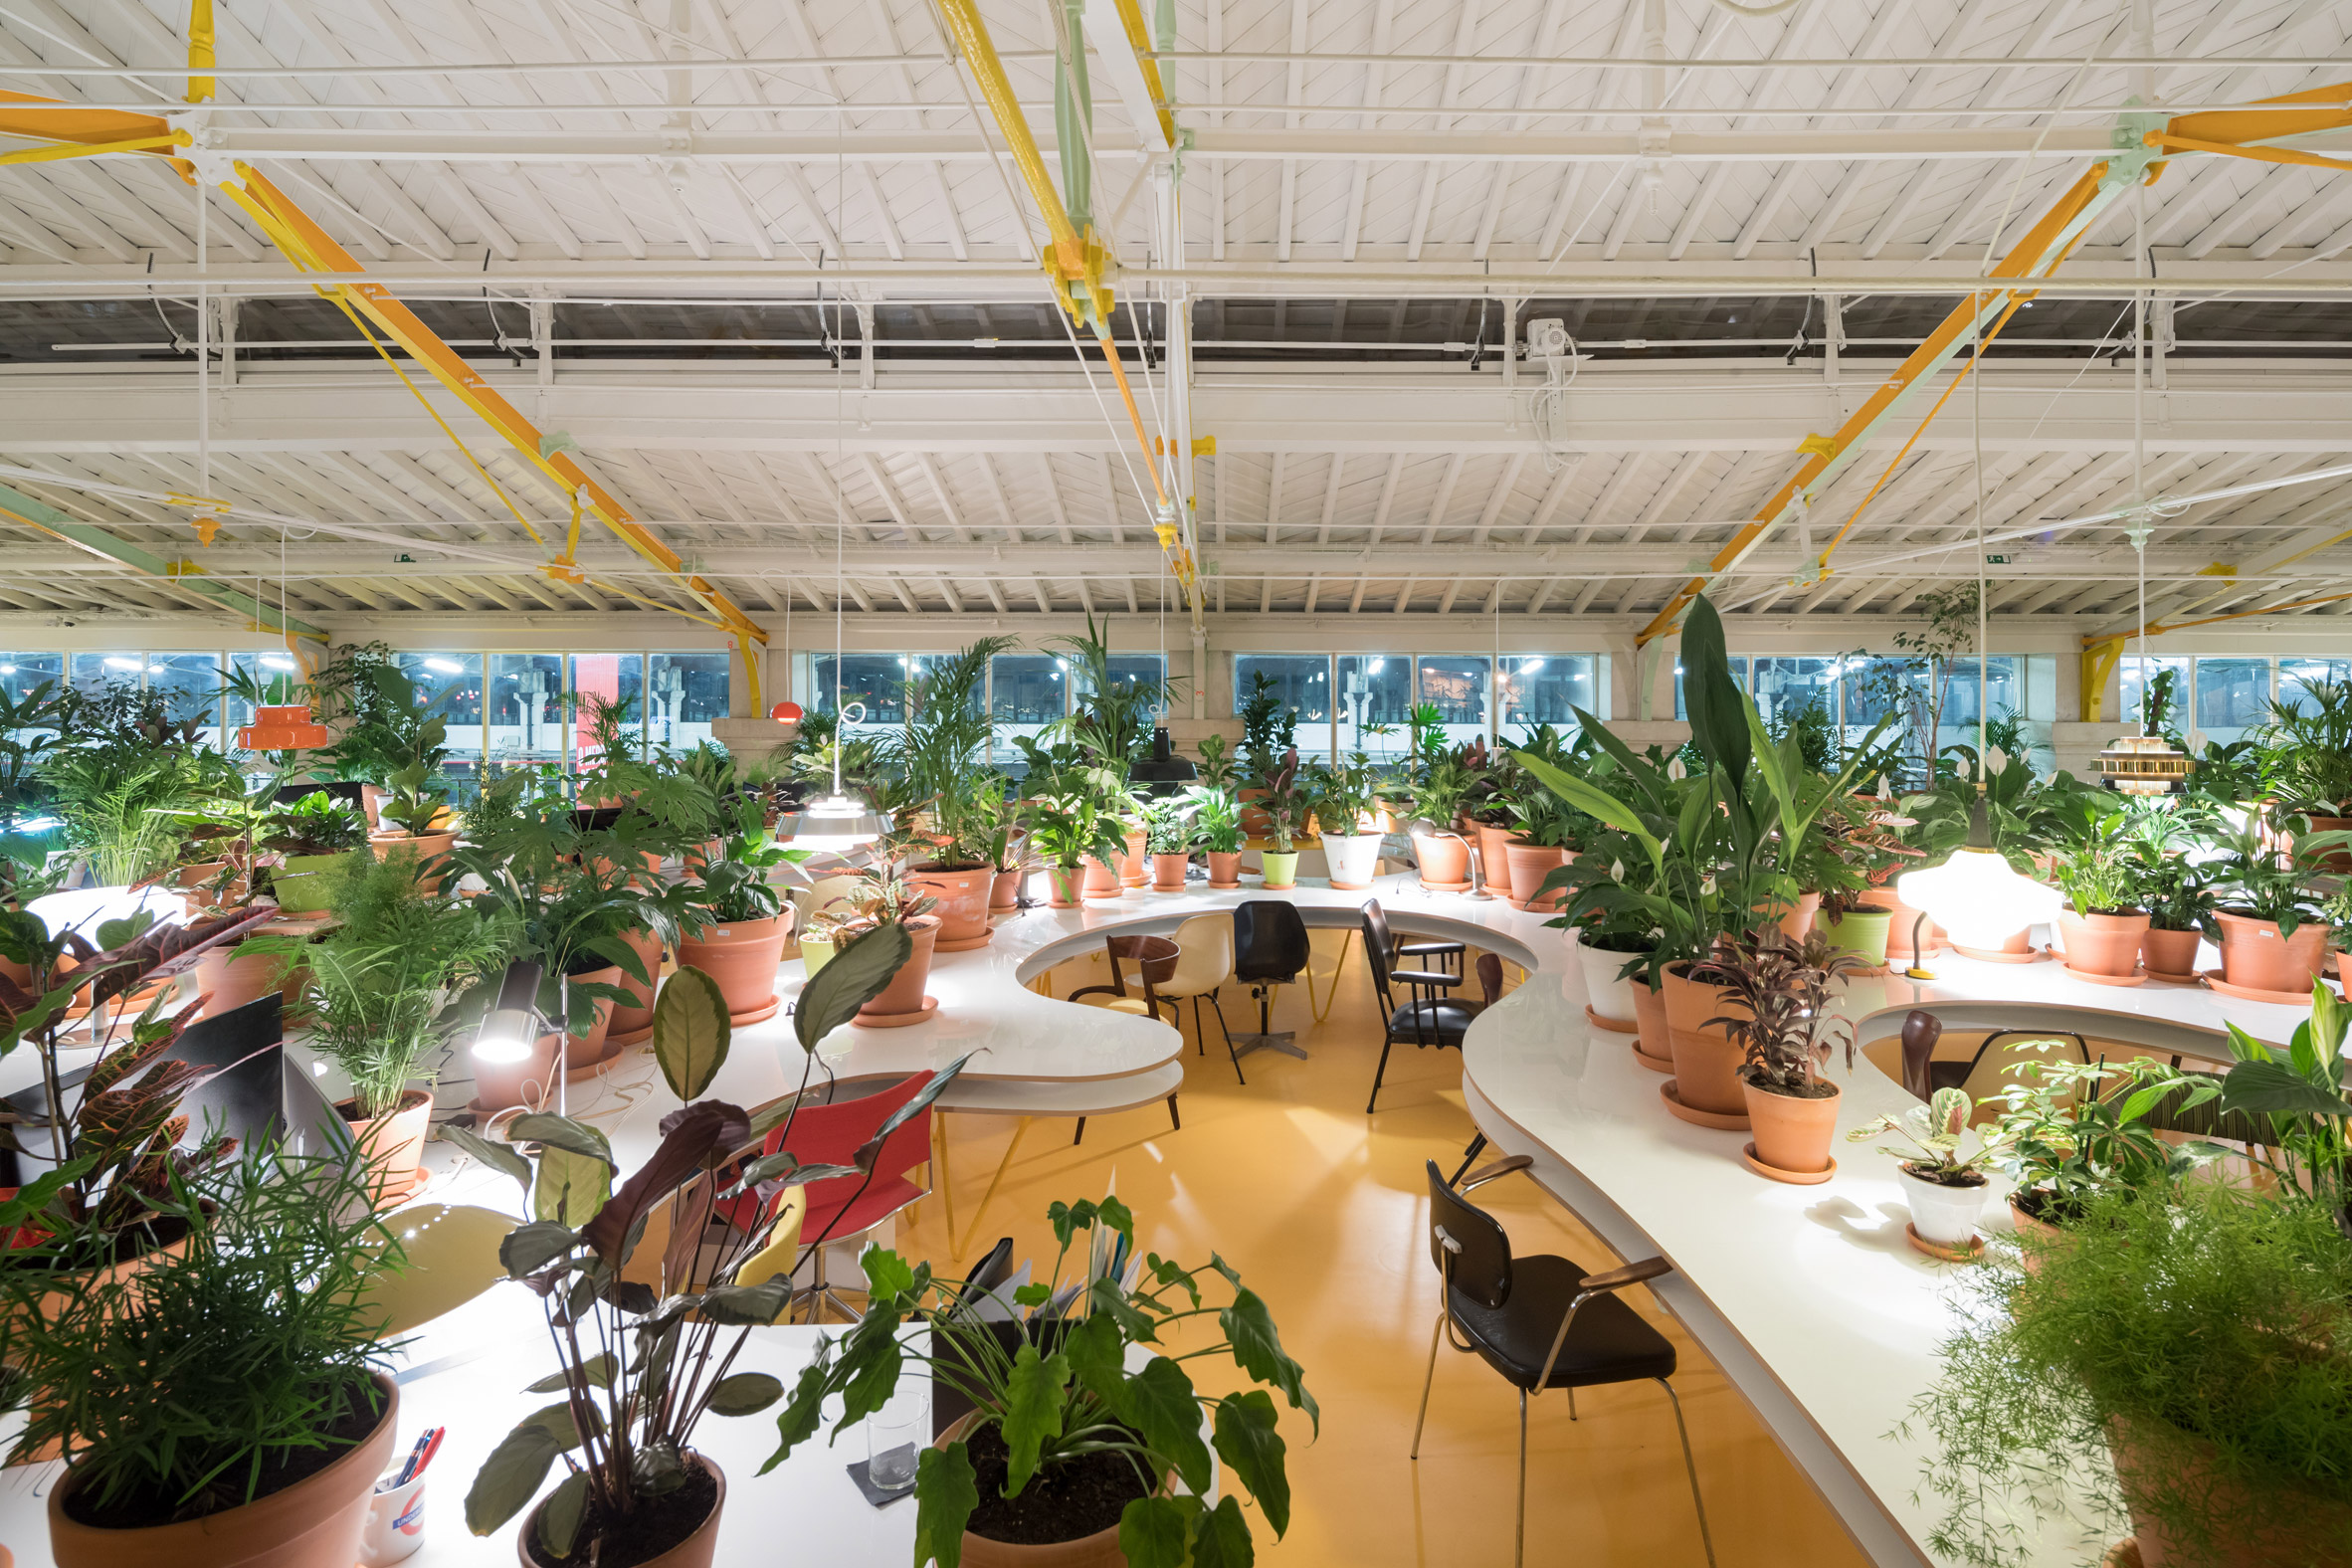 SelgasCano completes plant-filled co-working space inside Lisbon market hall for Second Home